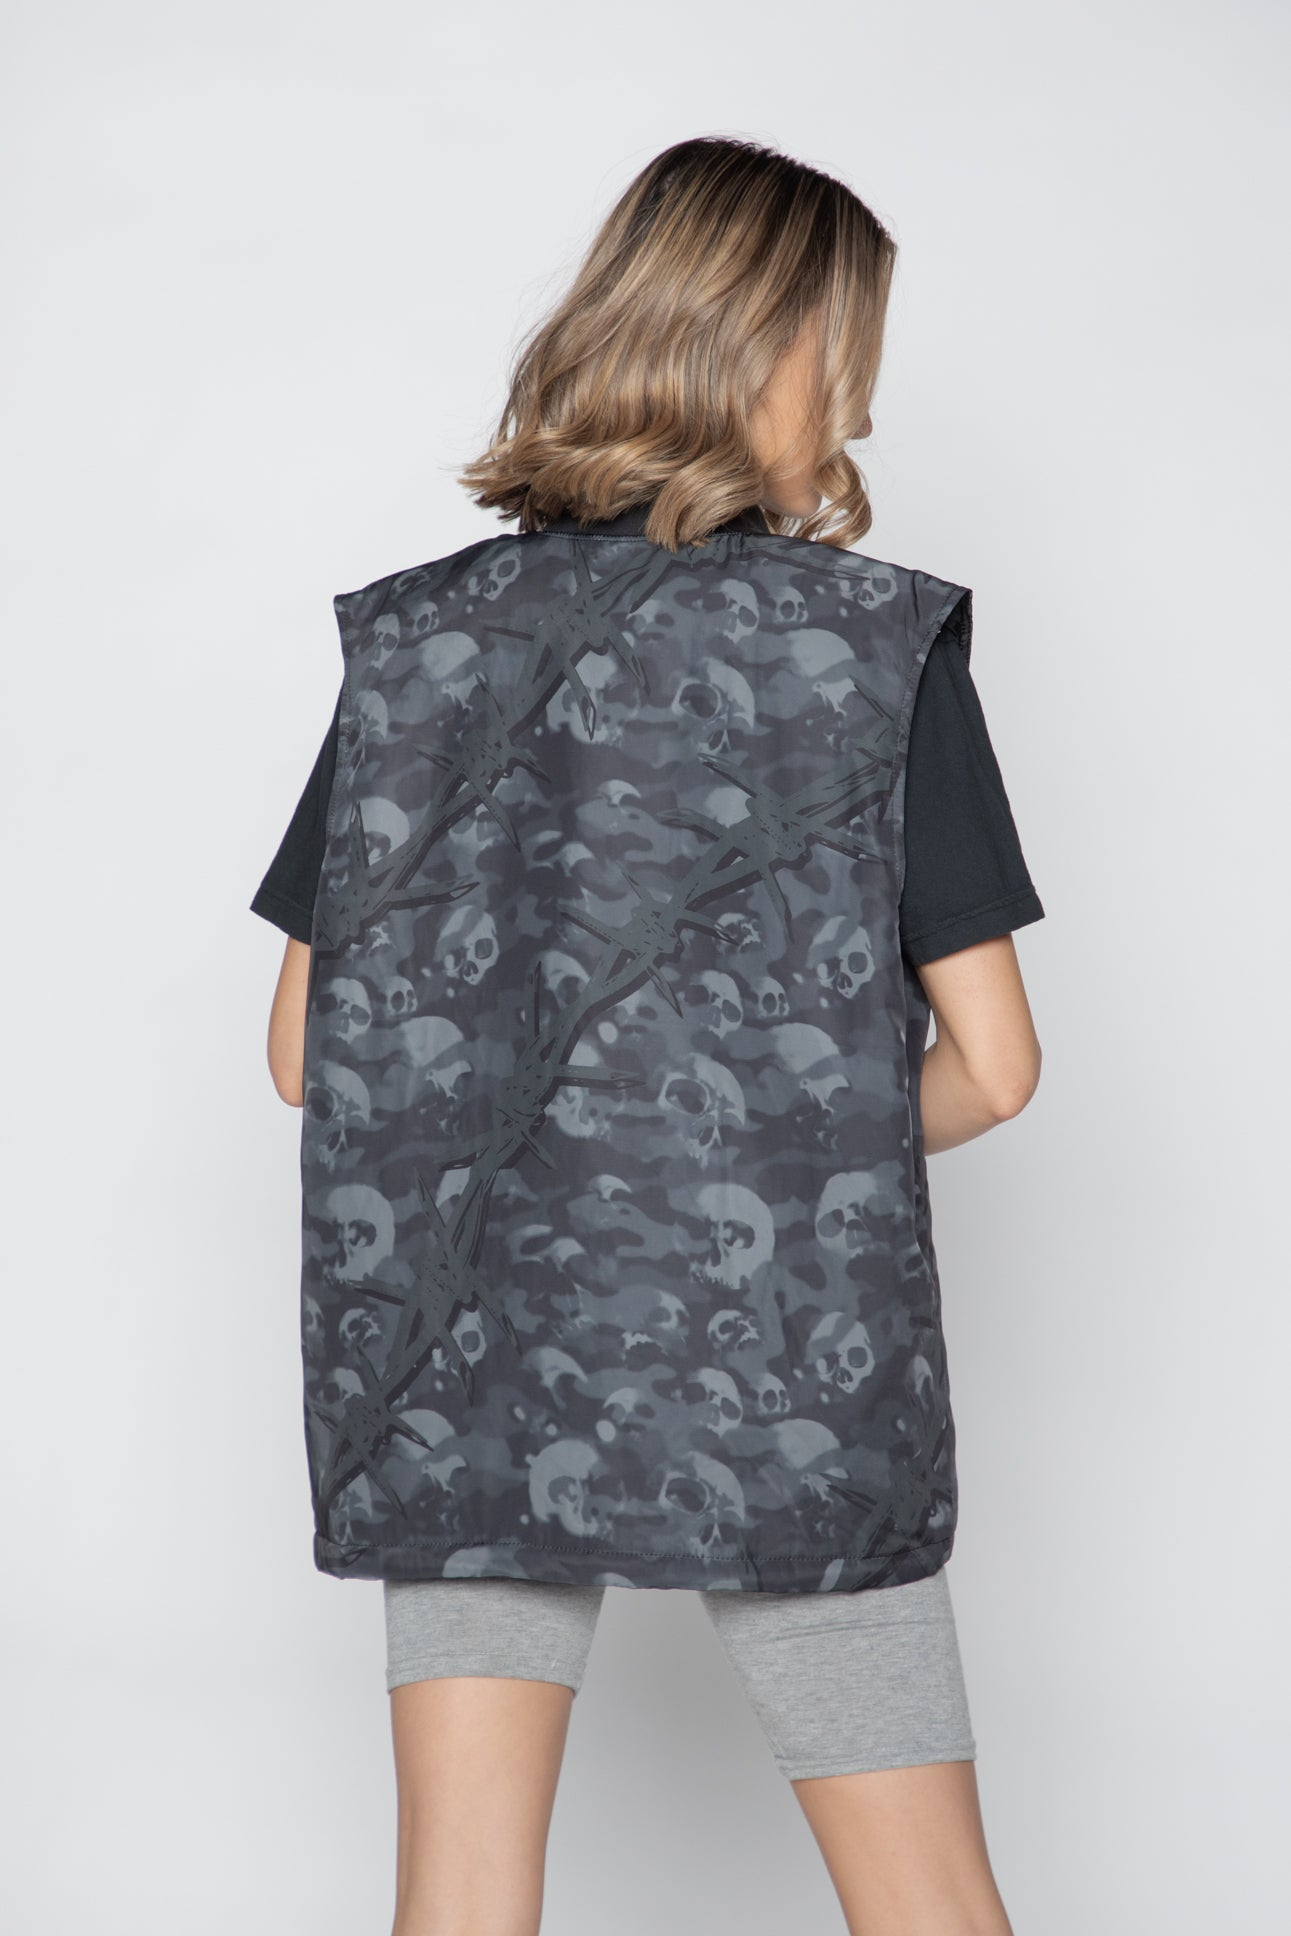 Catacombs Vest Black